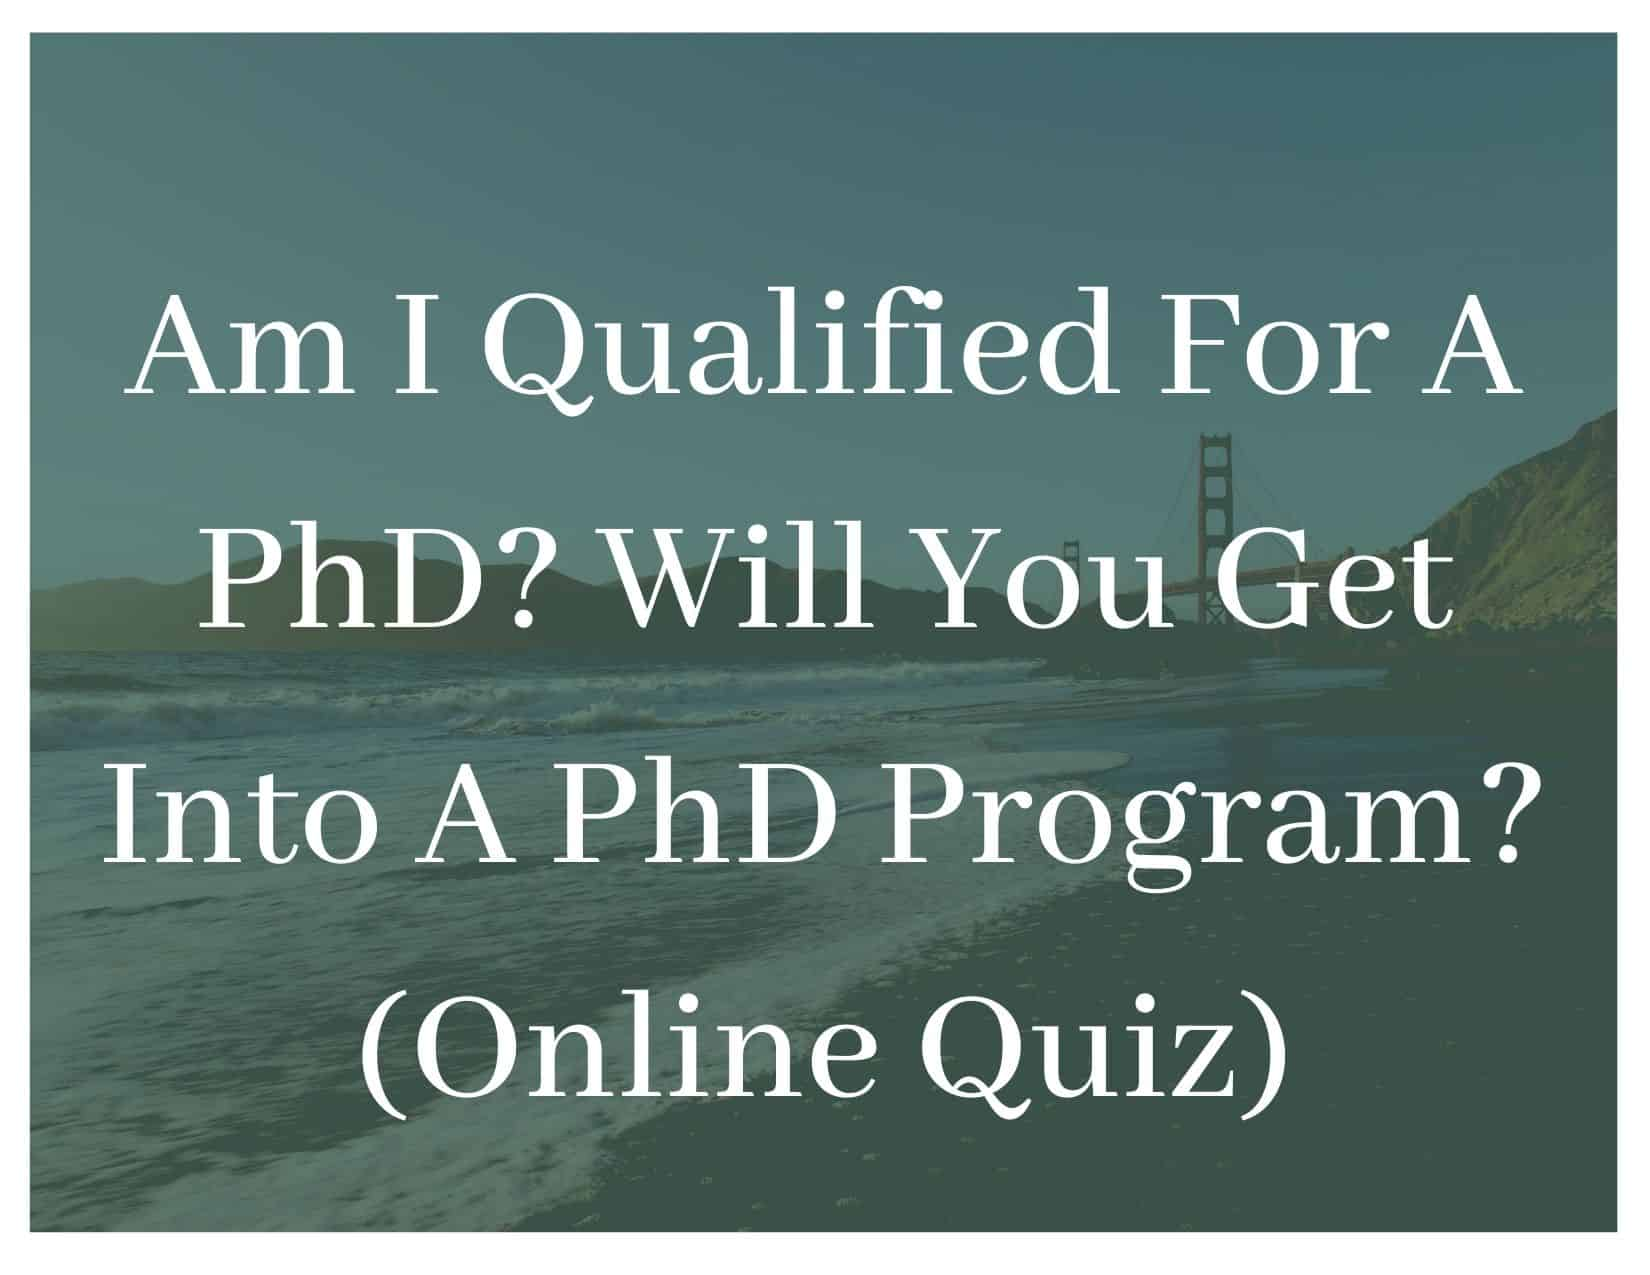 Am I Qualified For A PhD? Will You Get Into A PhD Program? (Online Quiz)